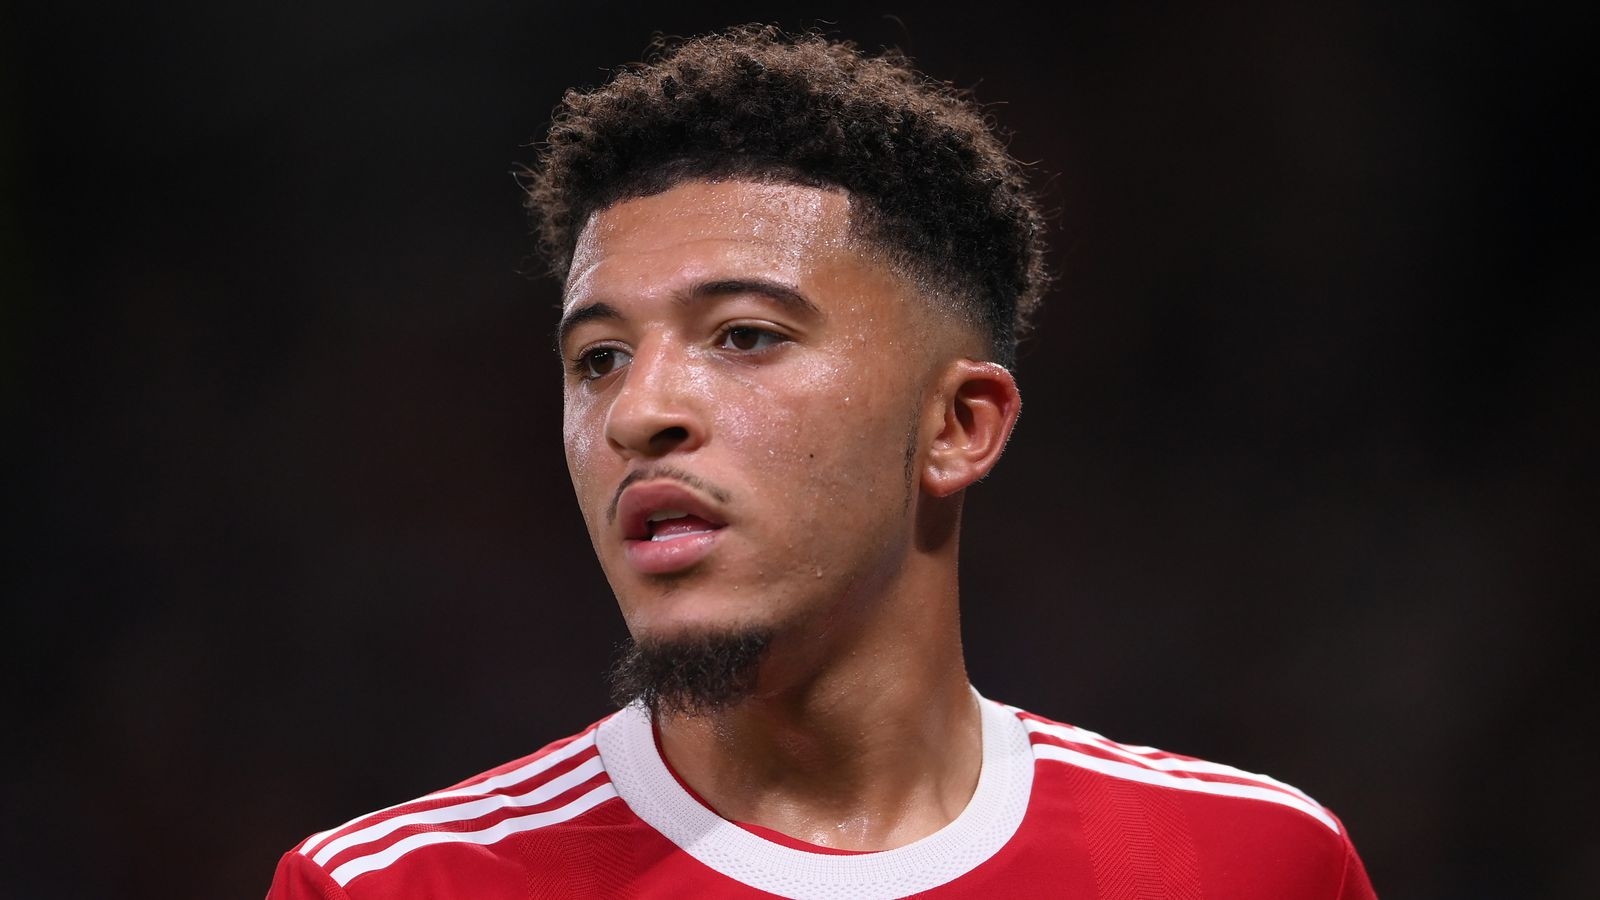 Jadon Sancho at Manchester United: Ole Gunnar Solskjaer's failure to get him playing exposes flaws